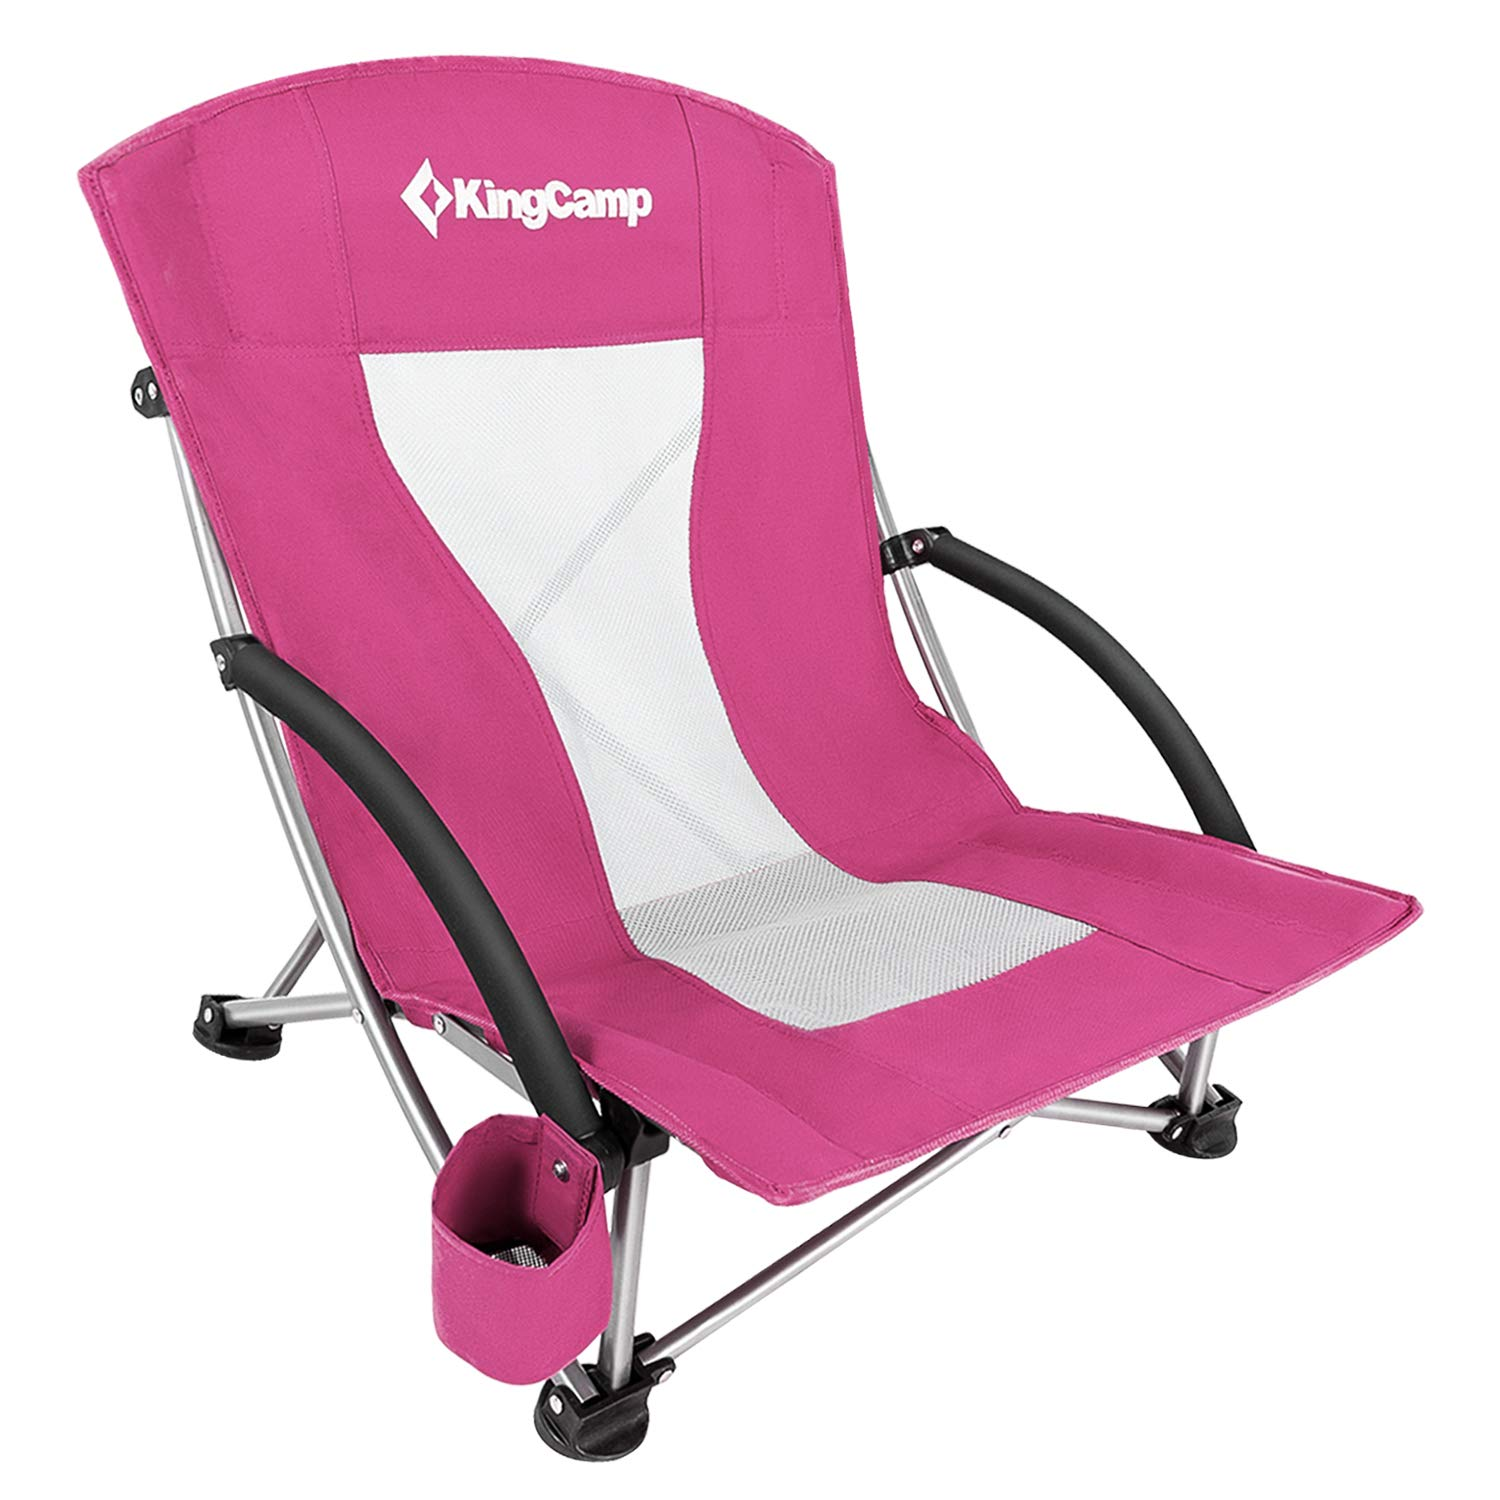 KingCamp Low Sling Beach Camping - Portable Beach Chairs